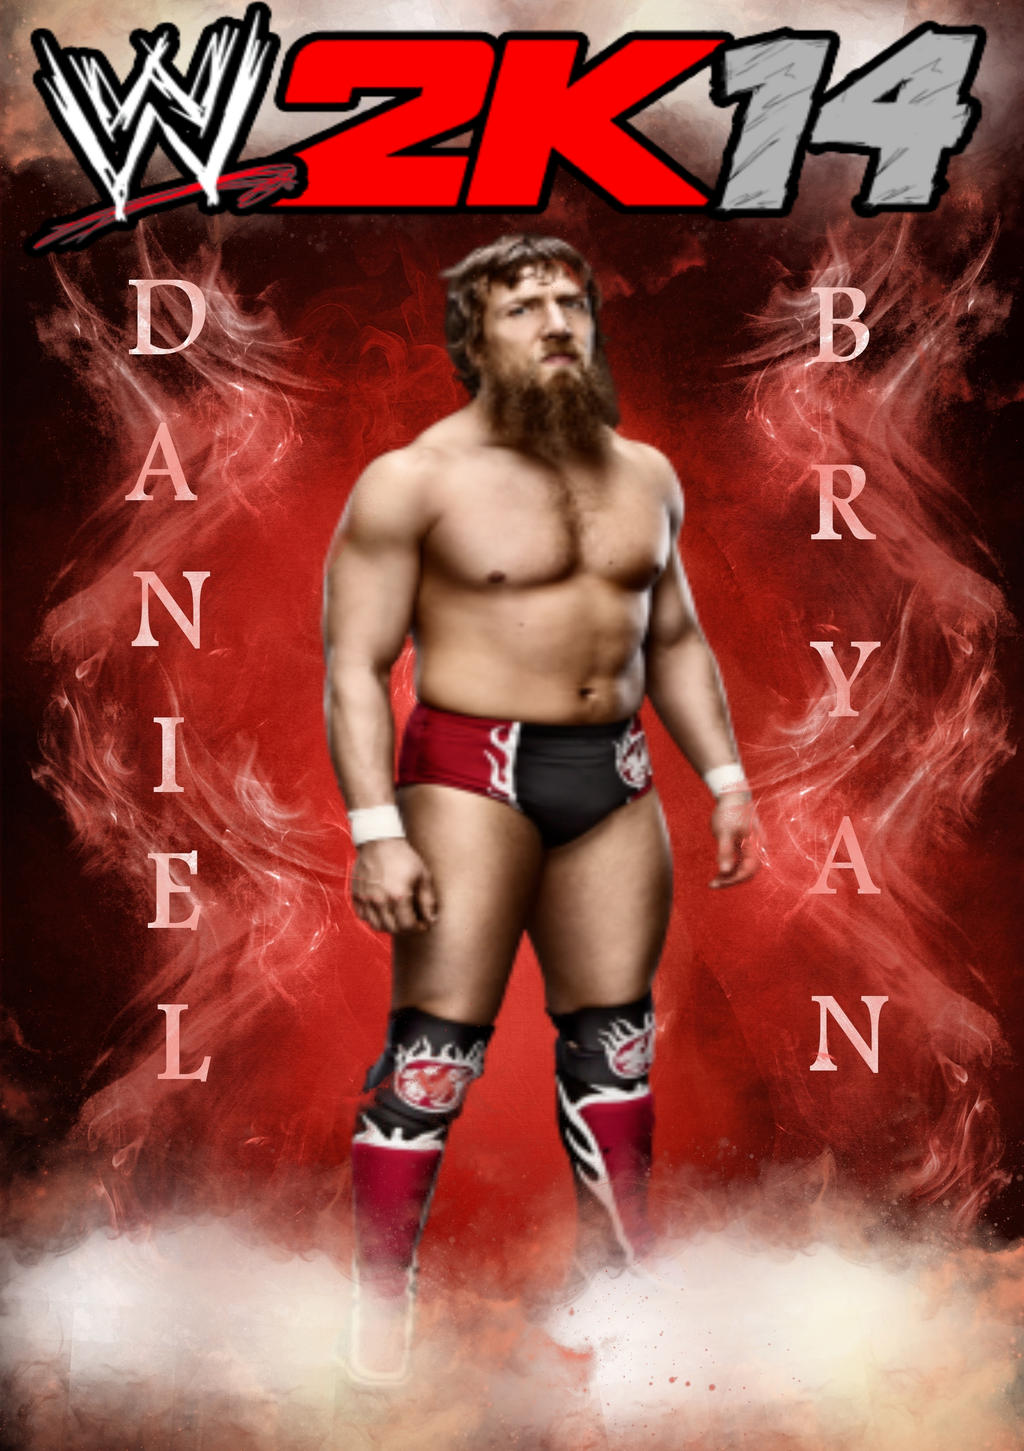 daniel bryan wwe 2k14 coverelitesaiyanwarrior on deviantart